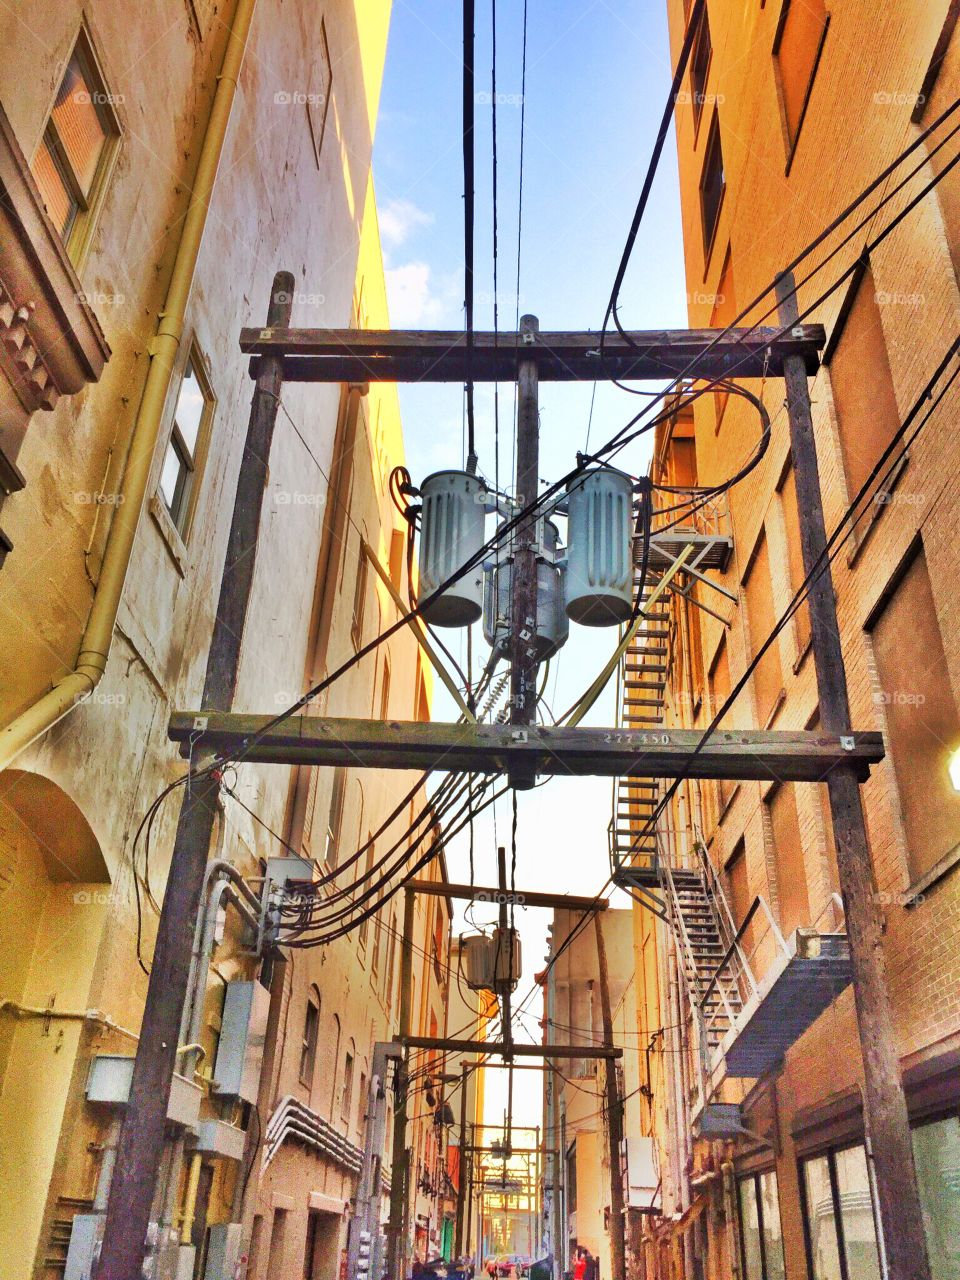 The power grid between buildings in Galveston crest an arched path down the narrow alley way.